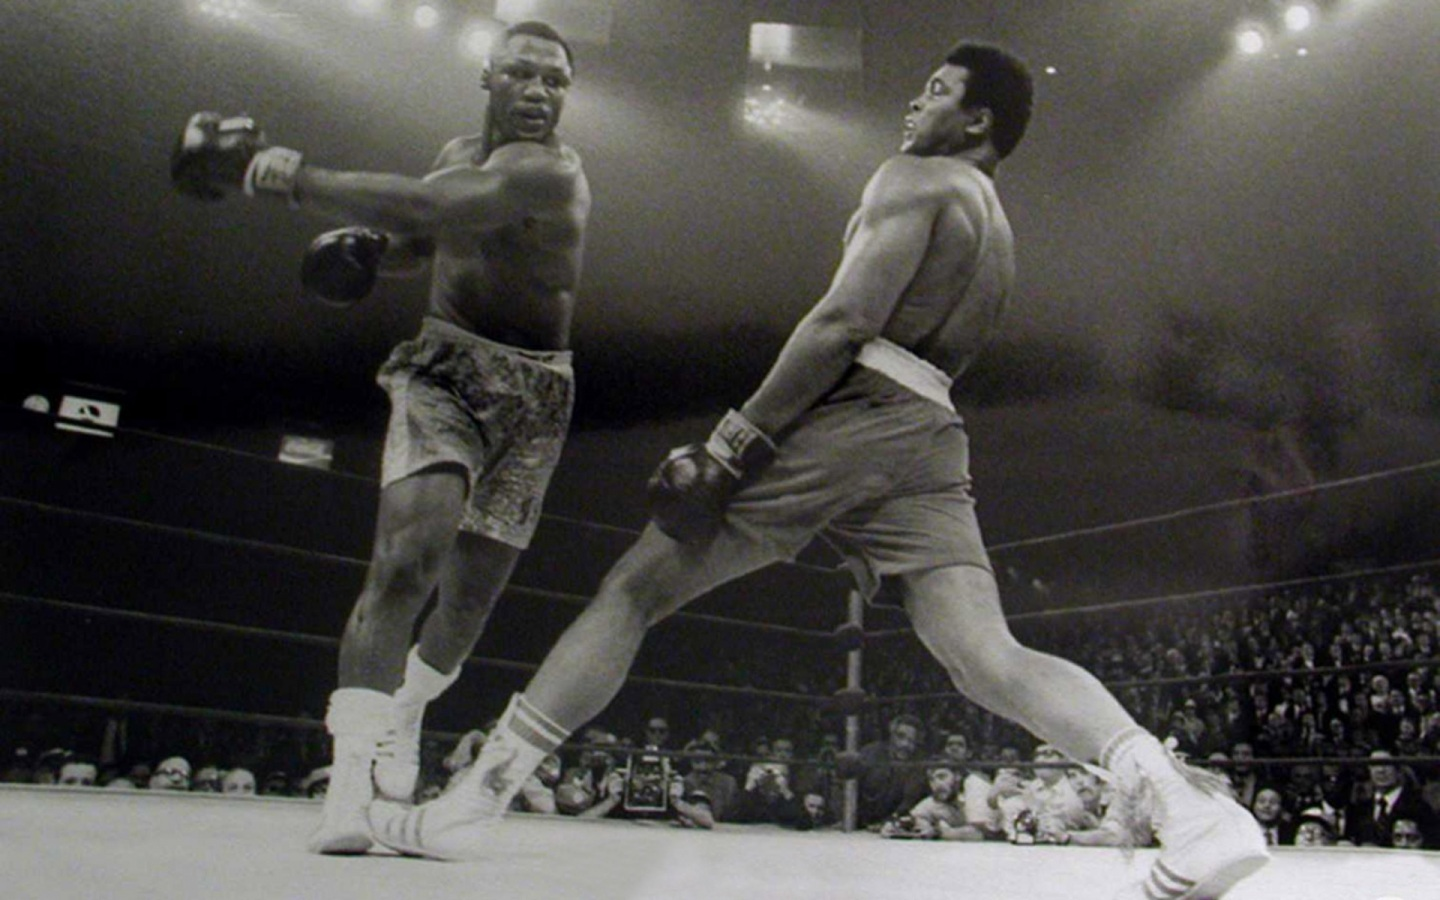 Muhammad Ali Vs Joe Frazier Wallpaper Photo Shared By Thoma7 1440x900